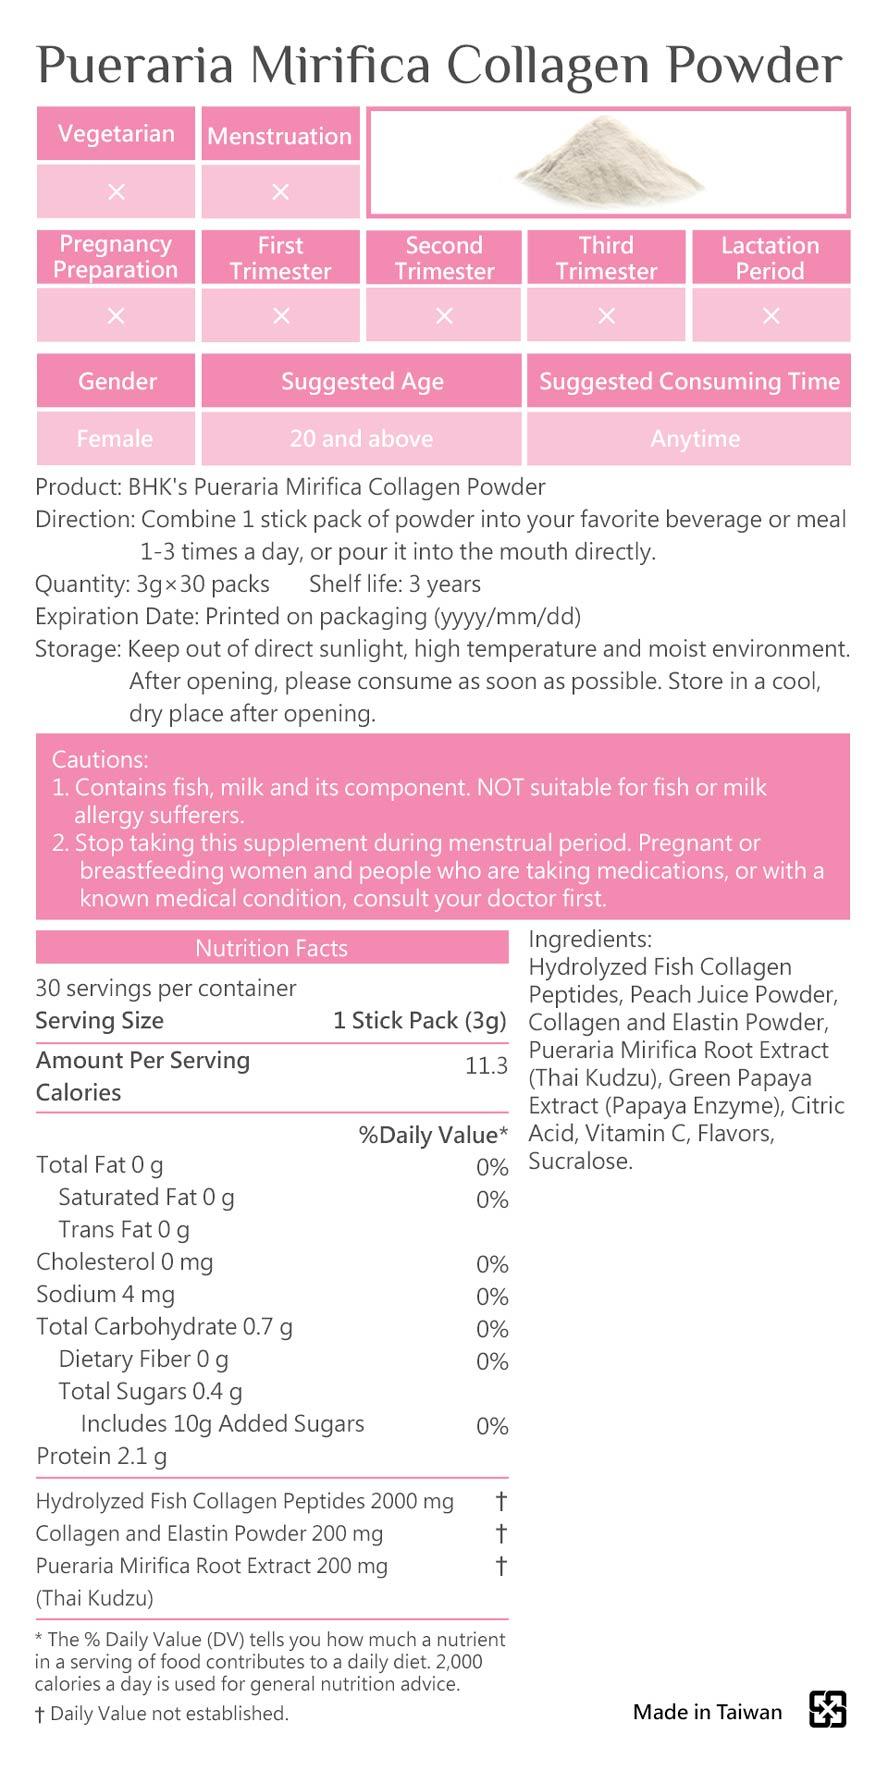 BHKs Pueraria Mirifica Collagen Powder is safe, no side effects, and made of natural ingredients.